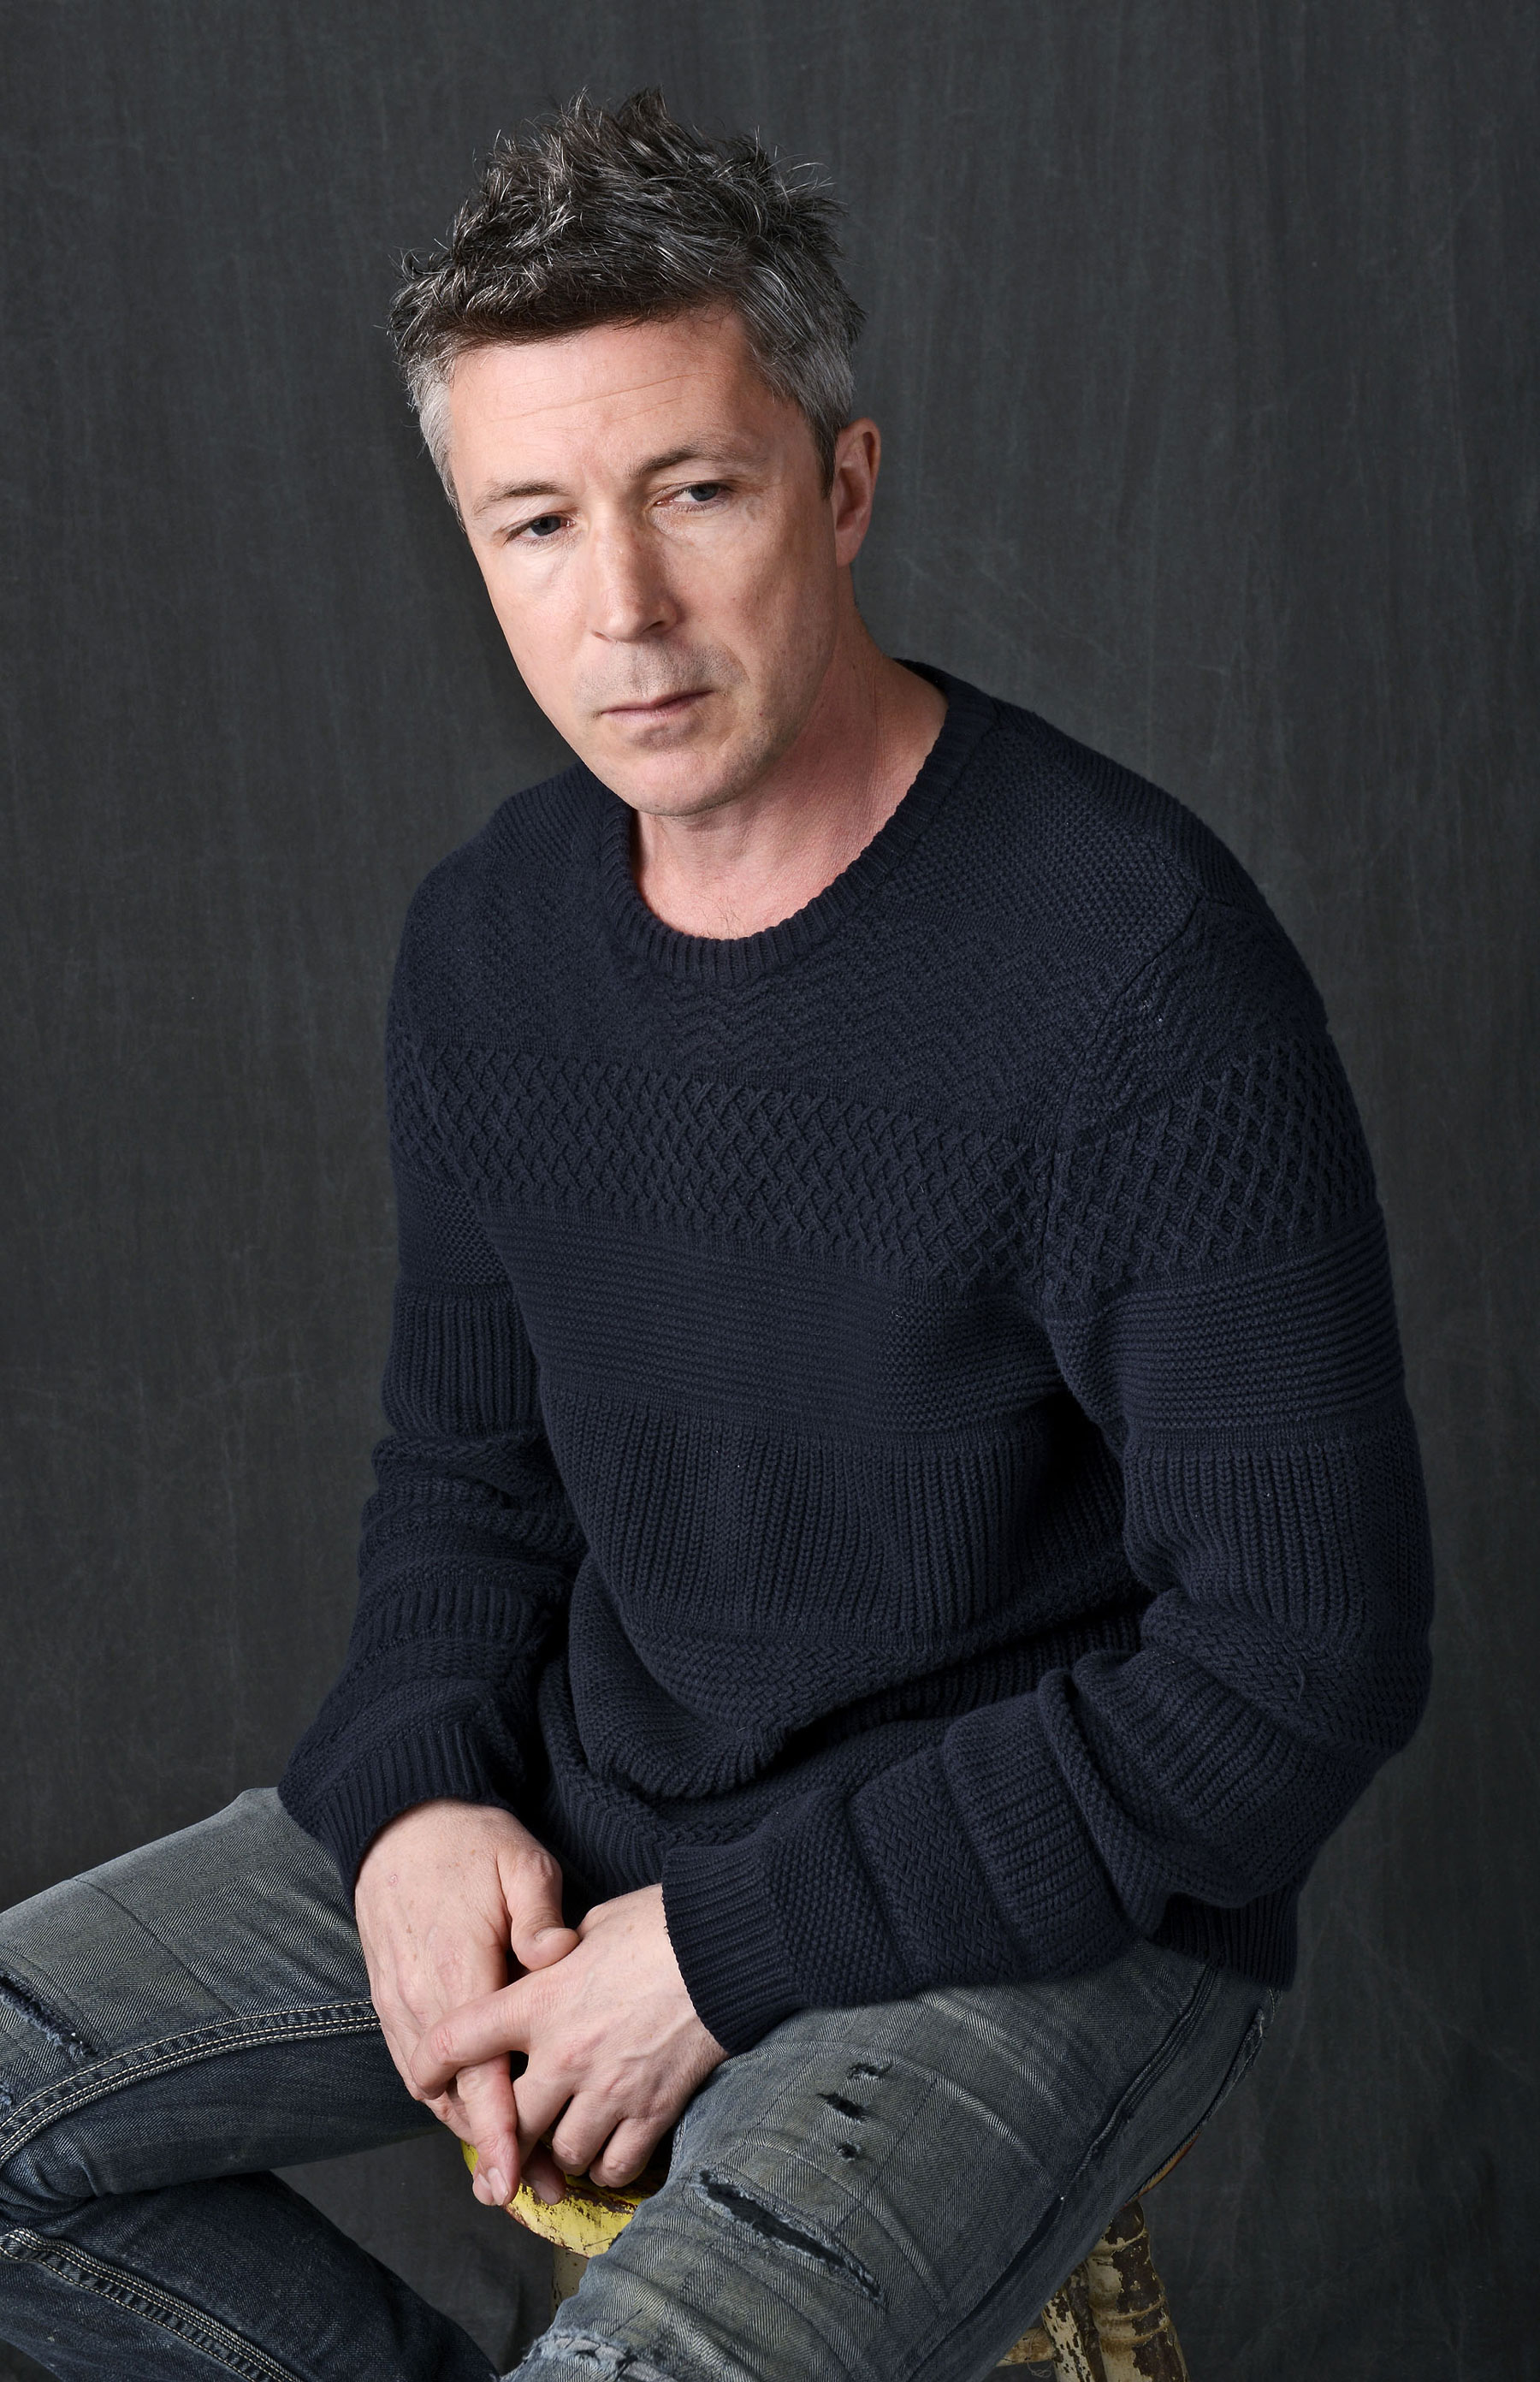 'Game of Thrones' Aidan Gillen on Littlefinger and Season Four